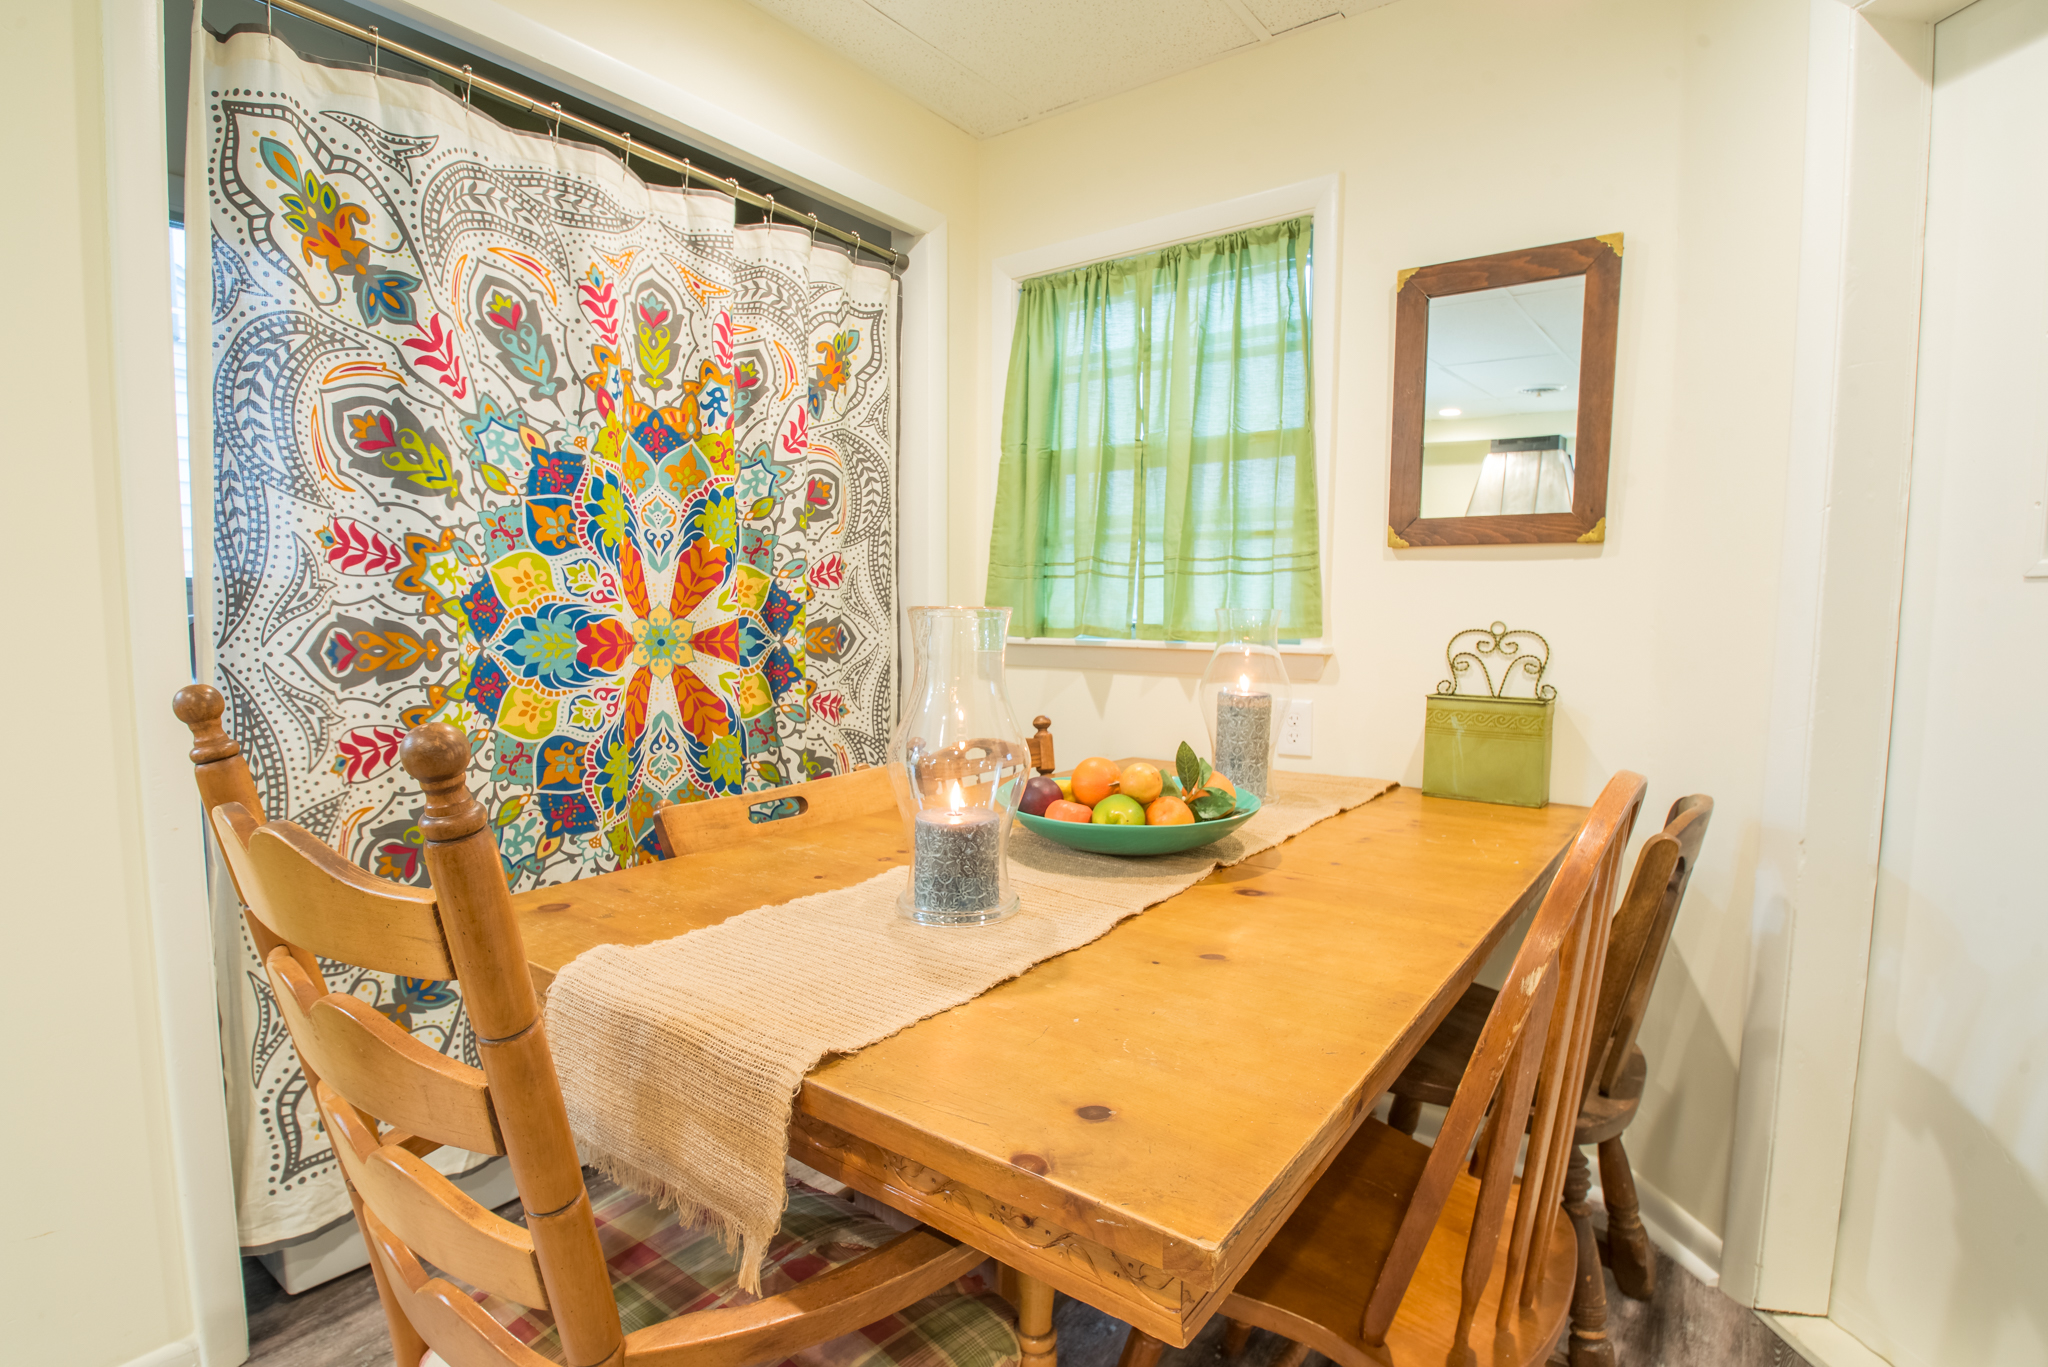 Dining table with seating for six - washer and dryer located behind curtain!